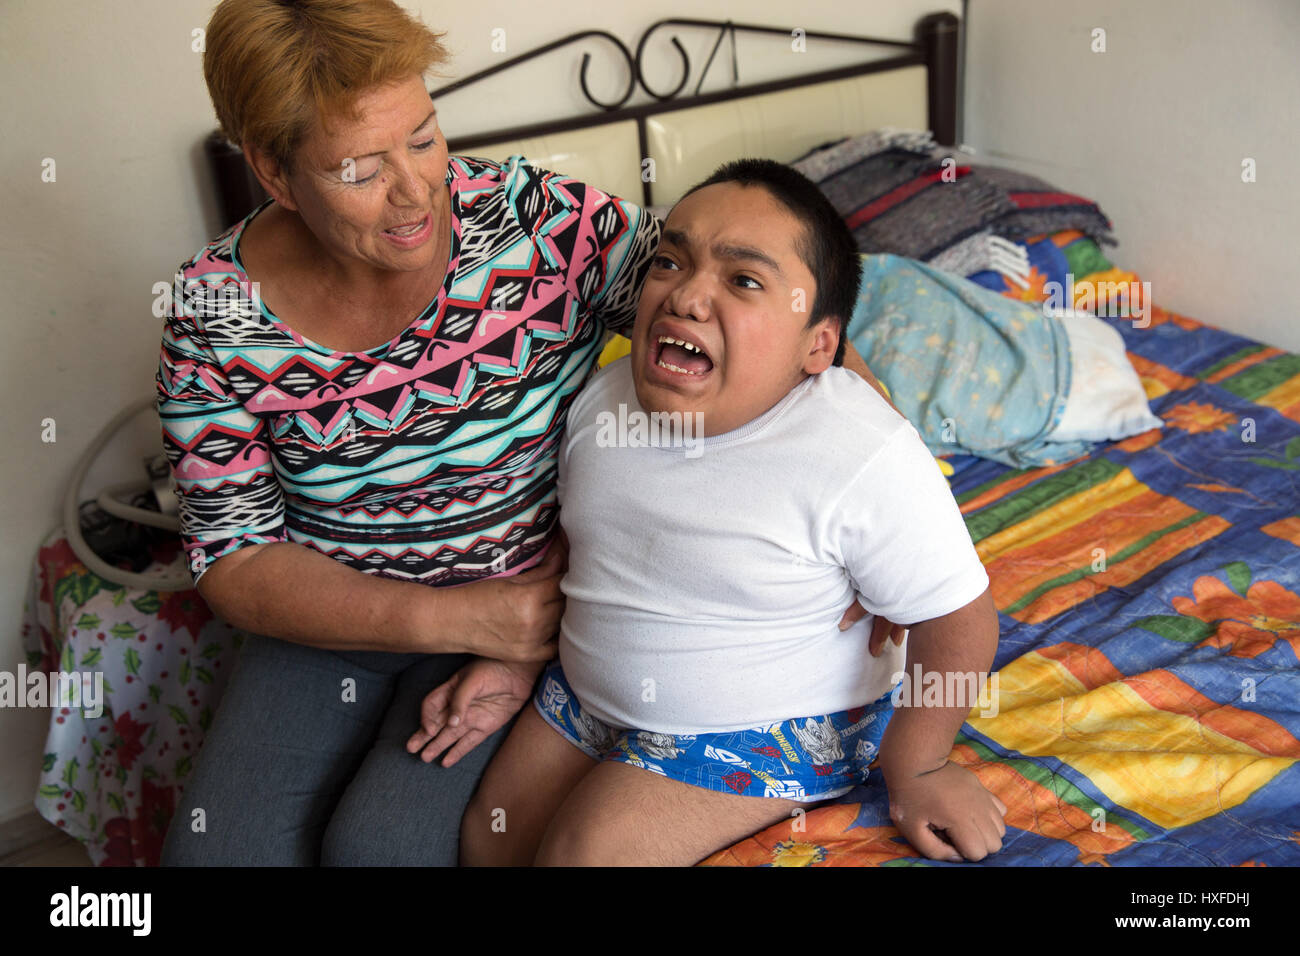 Joaquin Eduardo Torres Gil, 14, is pictured wth his mother Joaquina in his bedroom in Mexico City, Mexico, on February - Stock Image